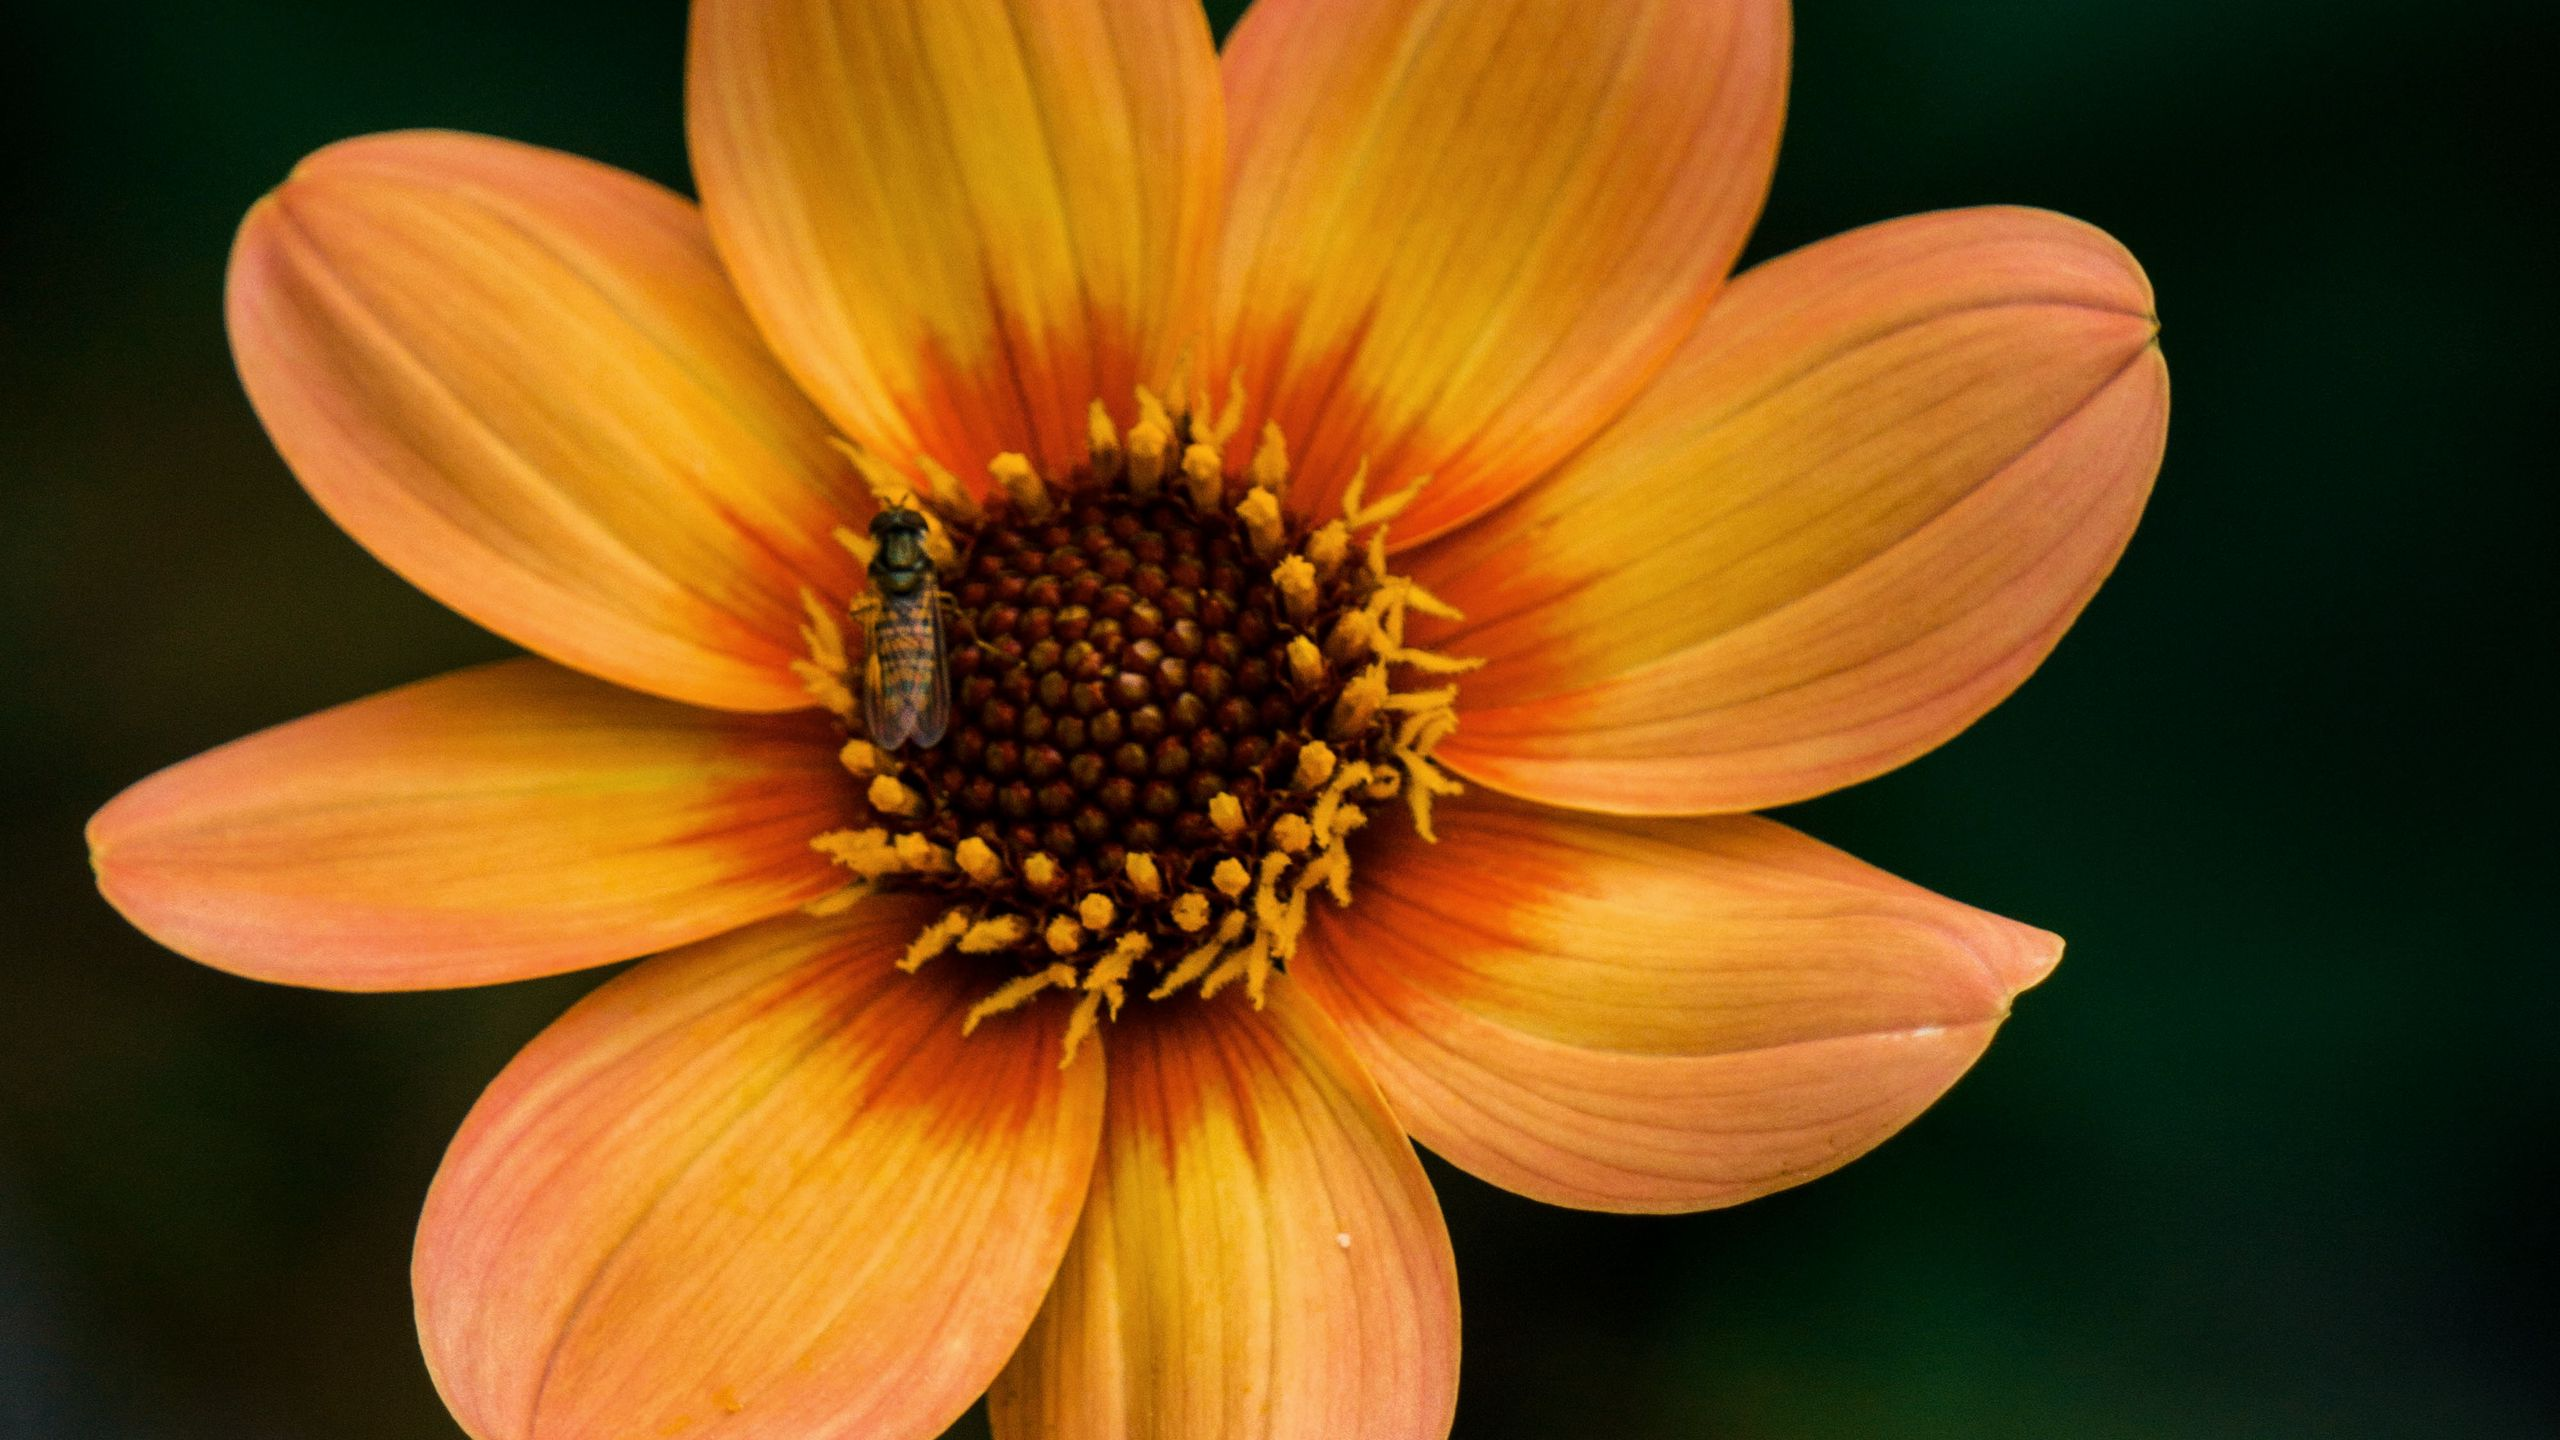 2560x1440 Wallpaper flower, bloom, plant, insect